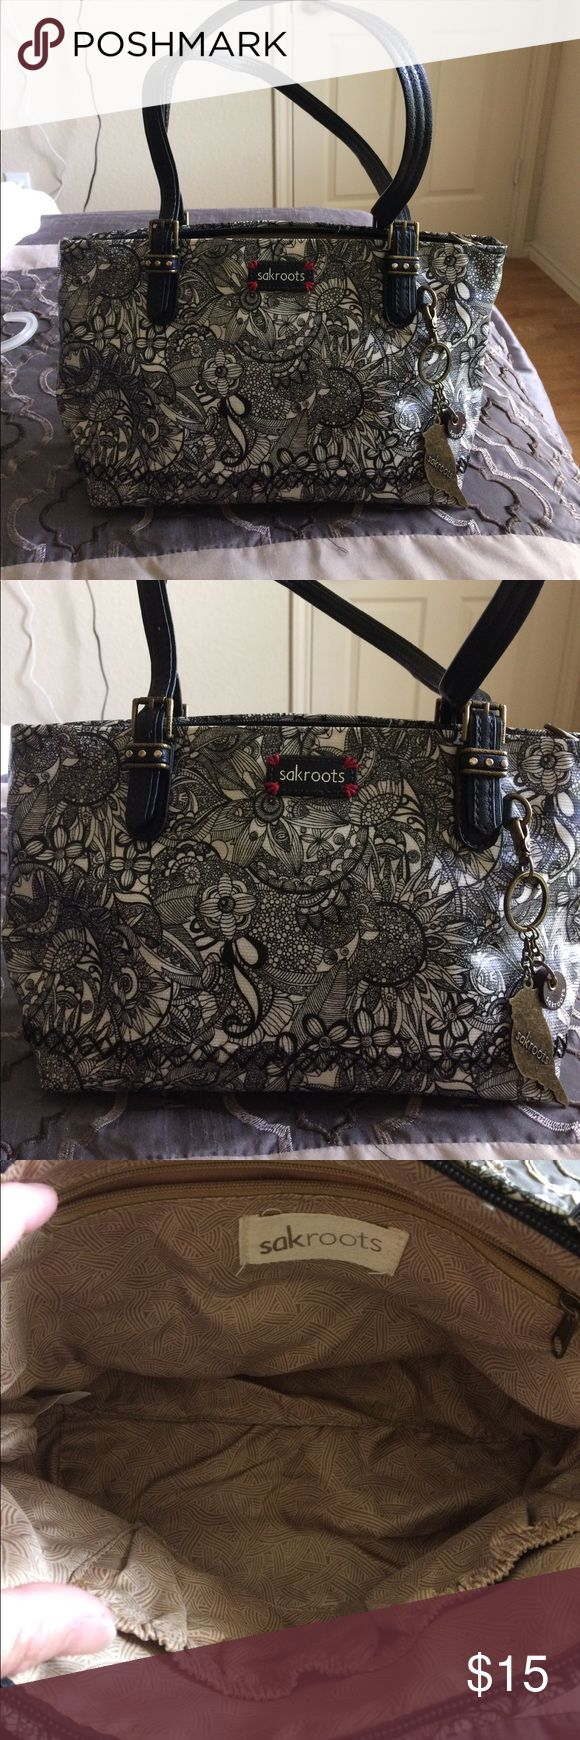 Sakroots black and white purse Gently used but a lot of life in this one Sakroots Bags Shoulder Bags